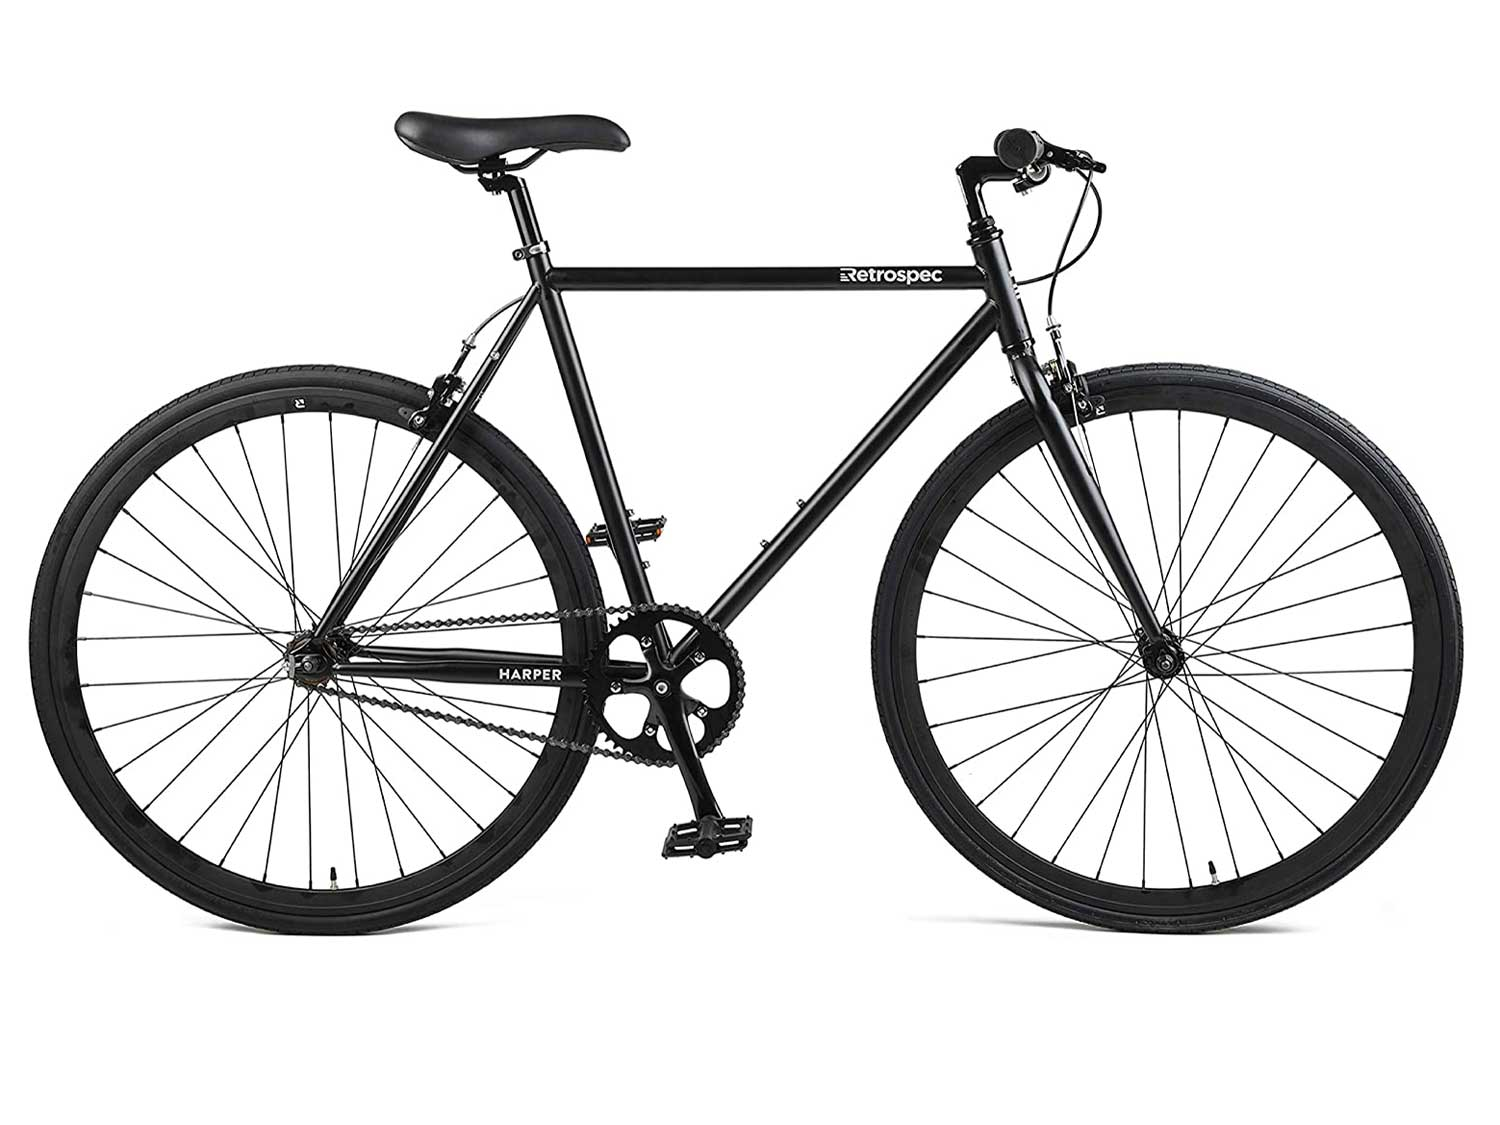 The Retrospec Harper fixed-gear bike features a reversible hub, so you can ride fixed or turn it into a coaster bike.